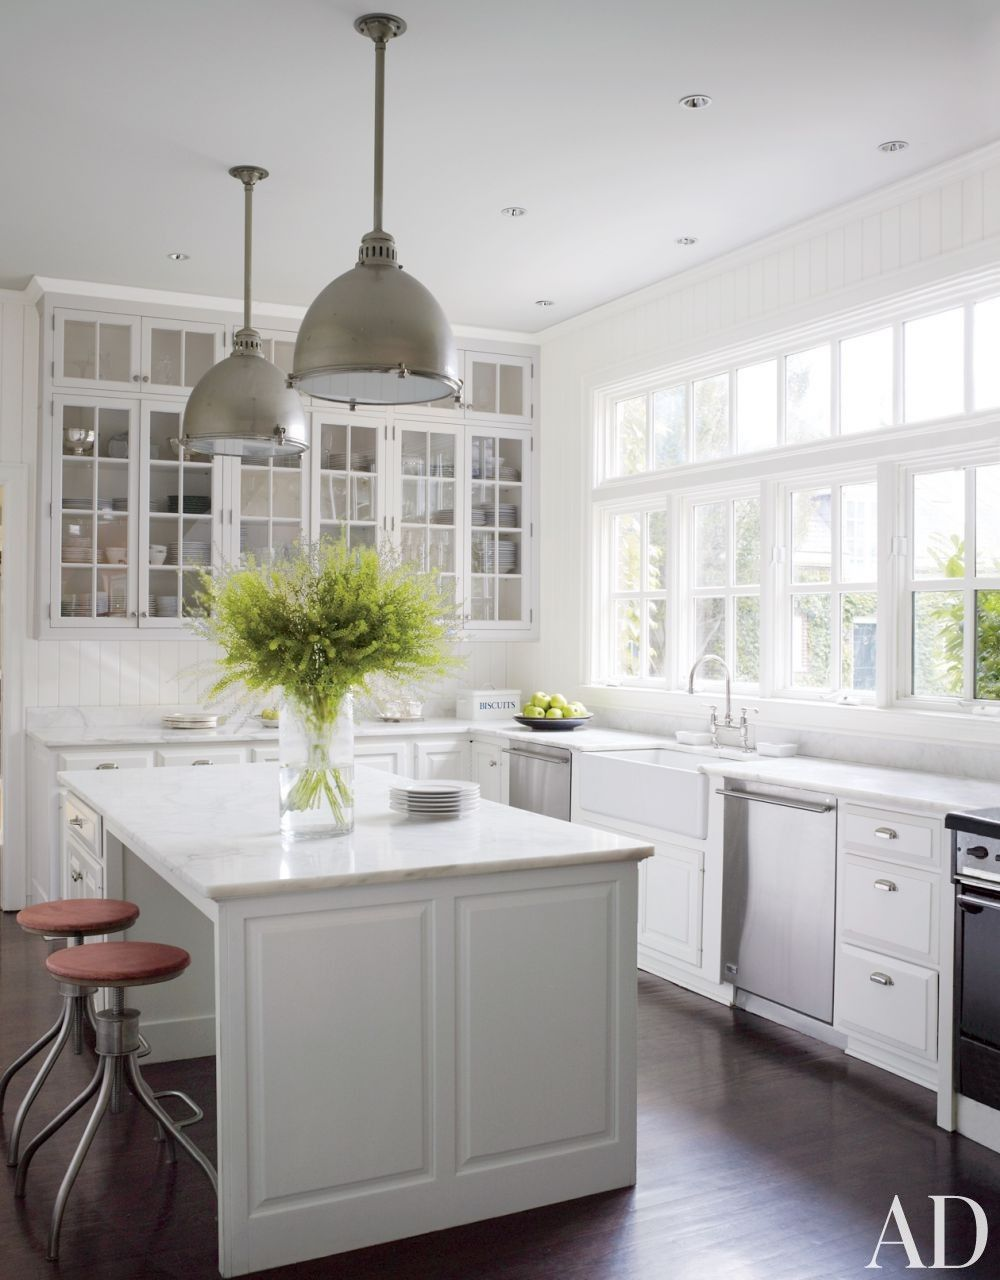 Traditional Kitchen by Victoria Hagan in Southport, Connecticut